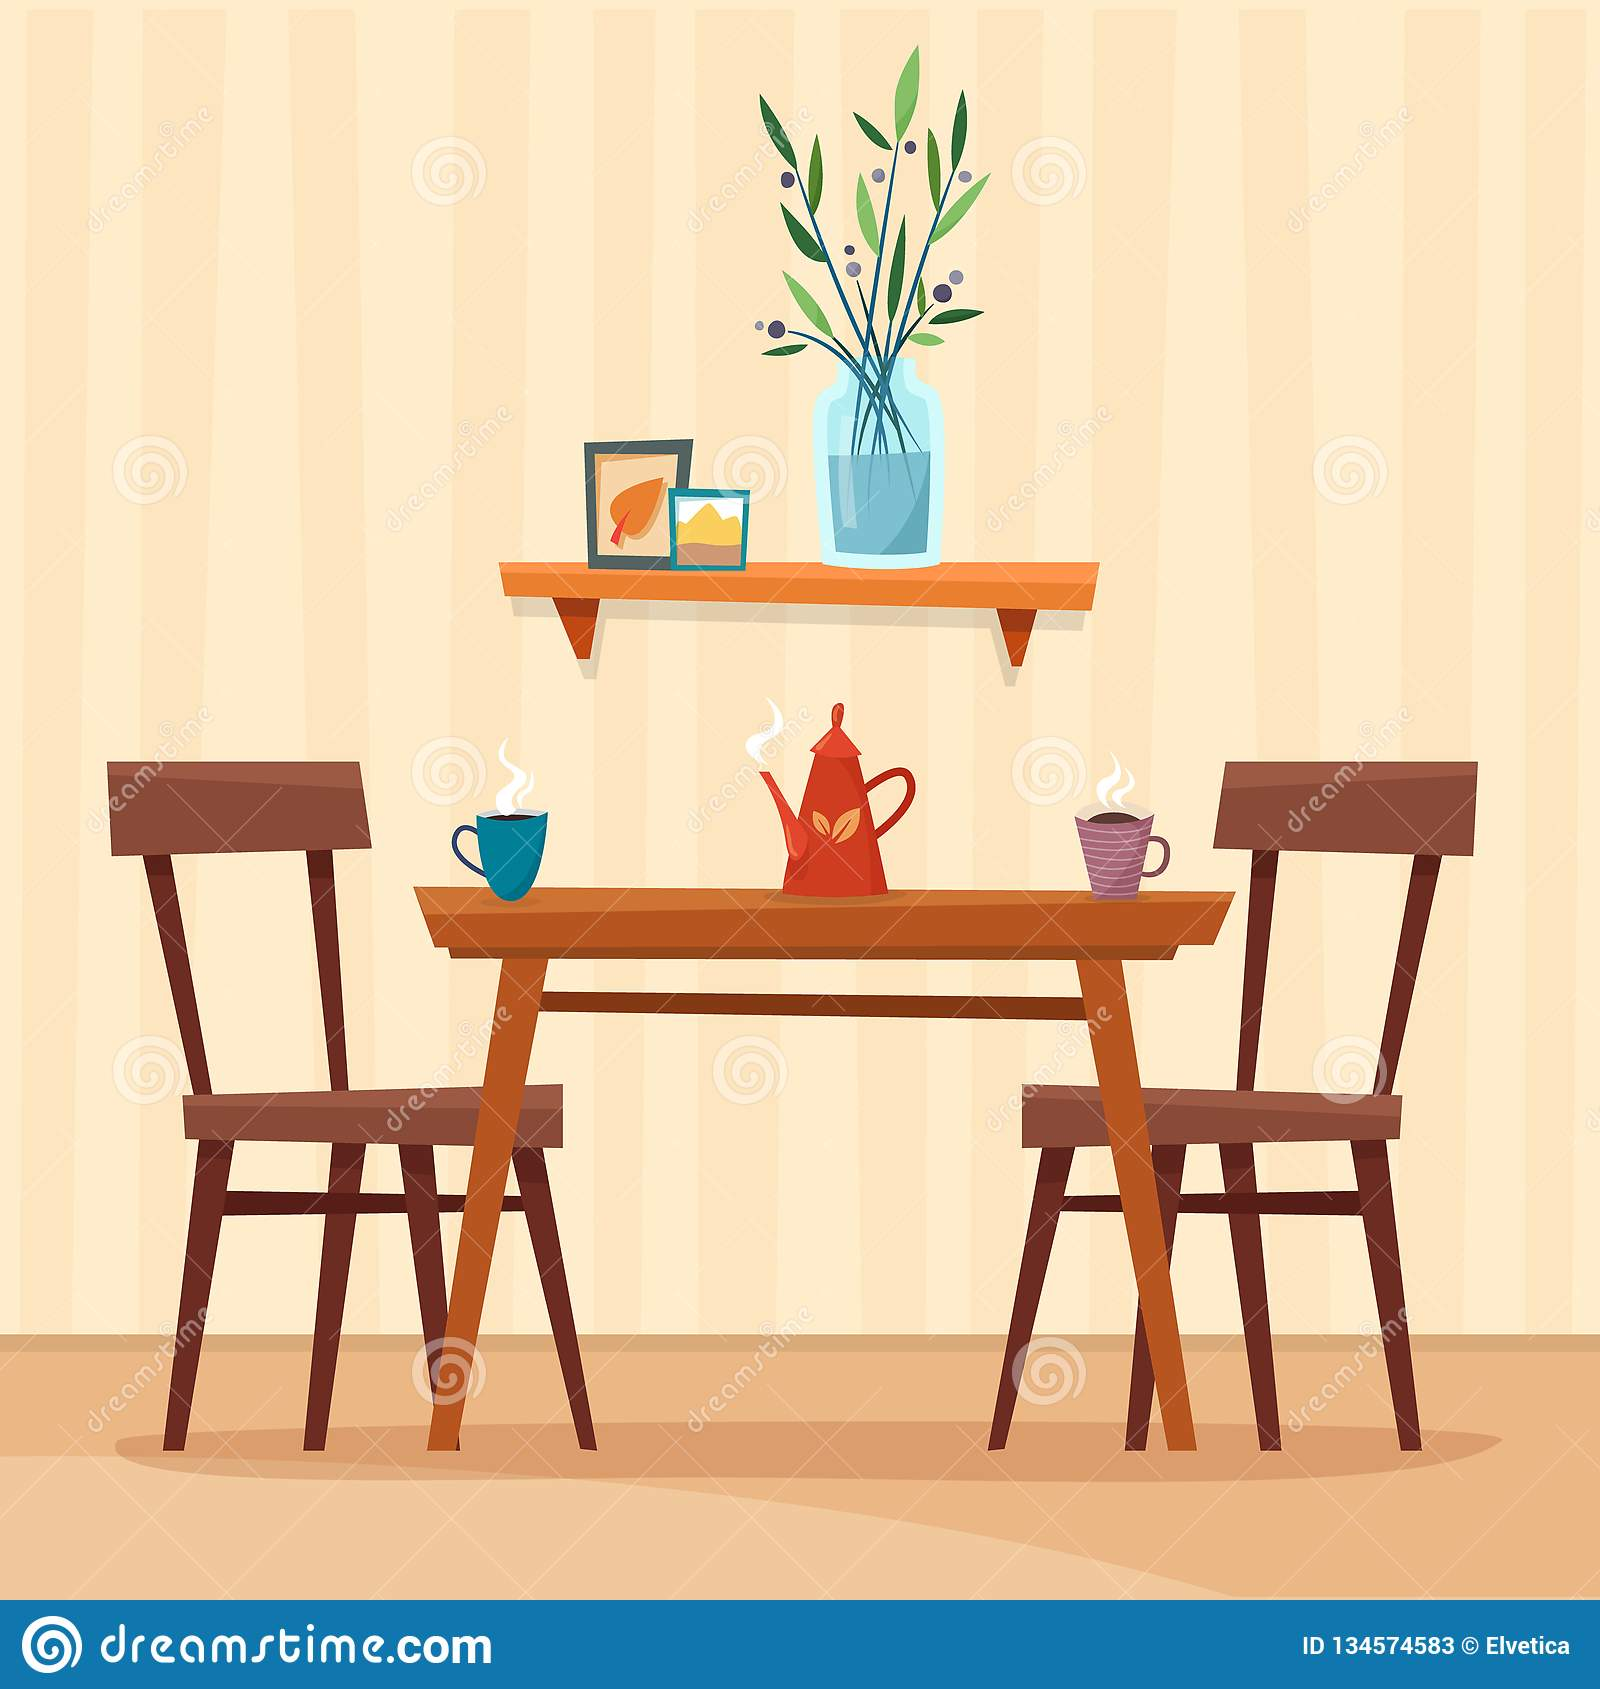 Cartoon Kitchen Furniture: Dining Table In Kitchen With Chairs, Cups And Teapot